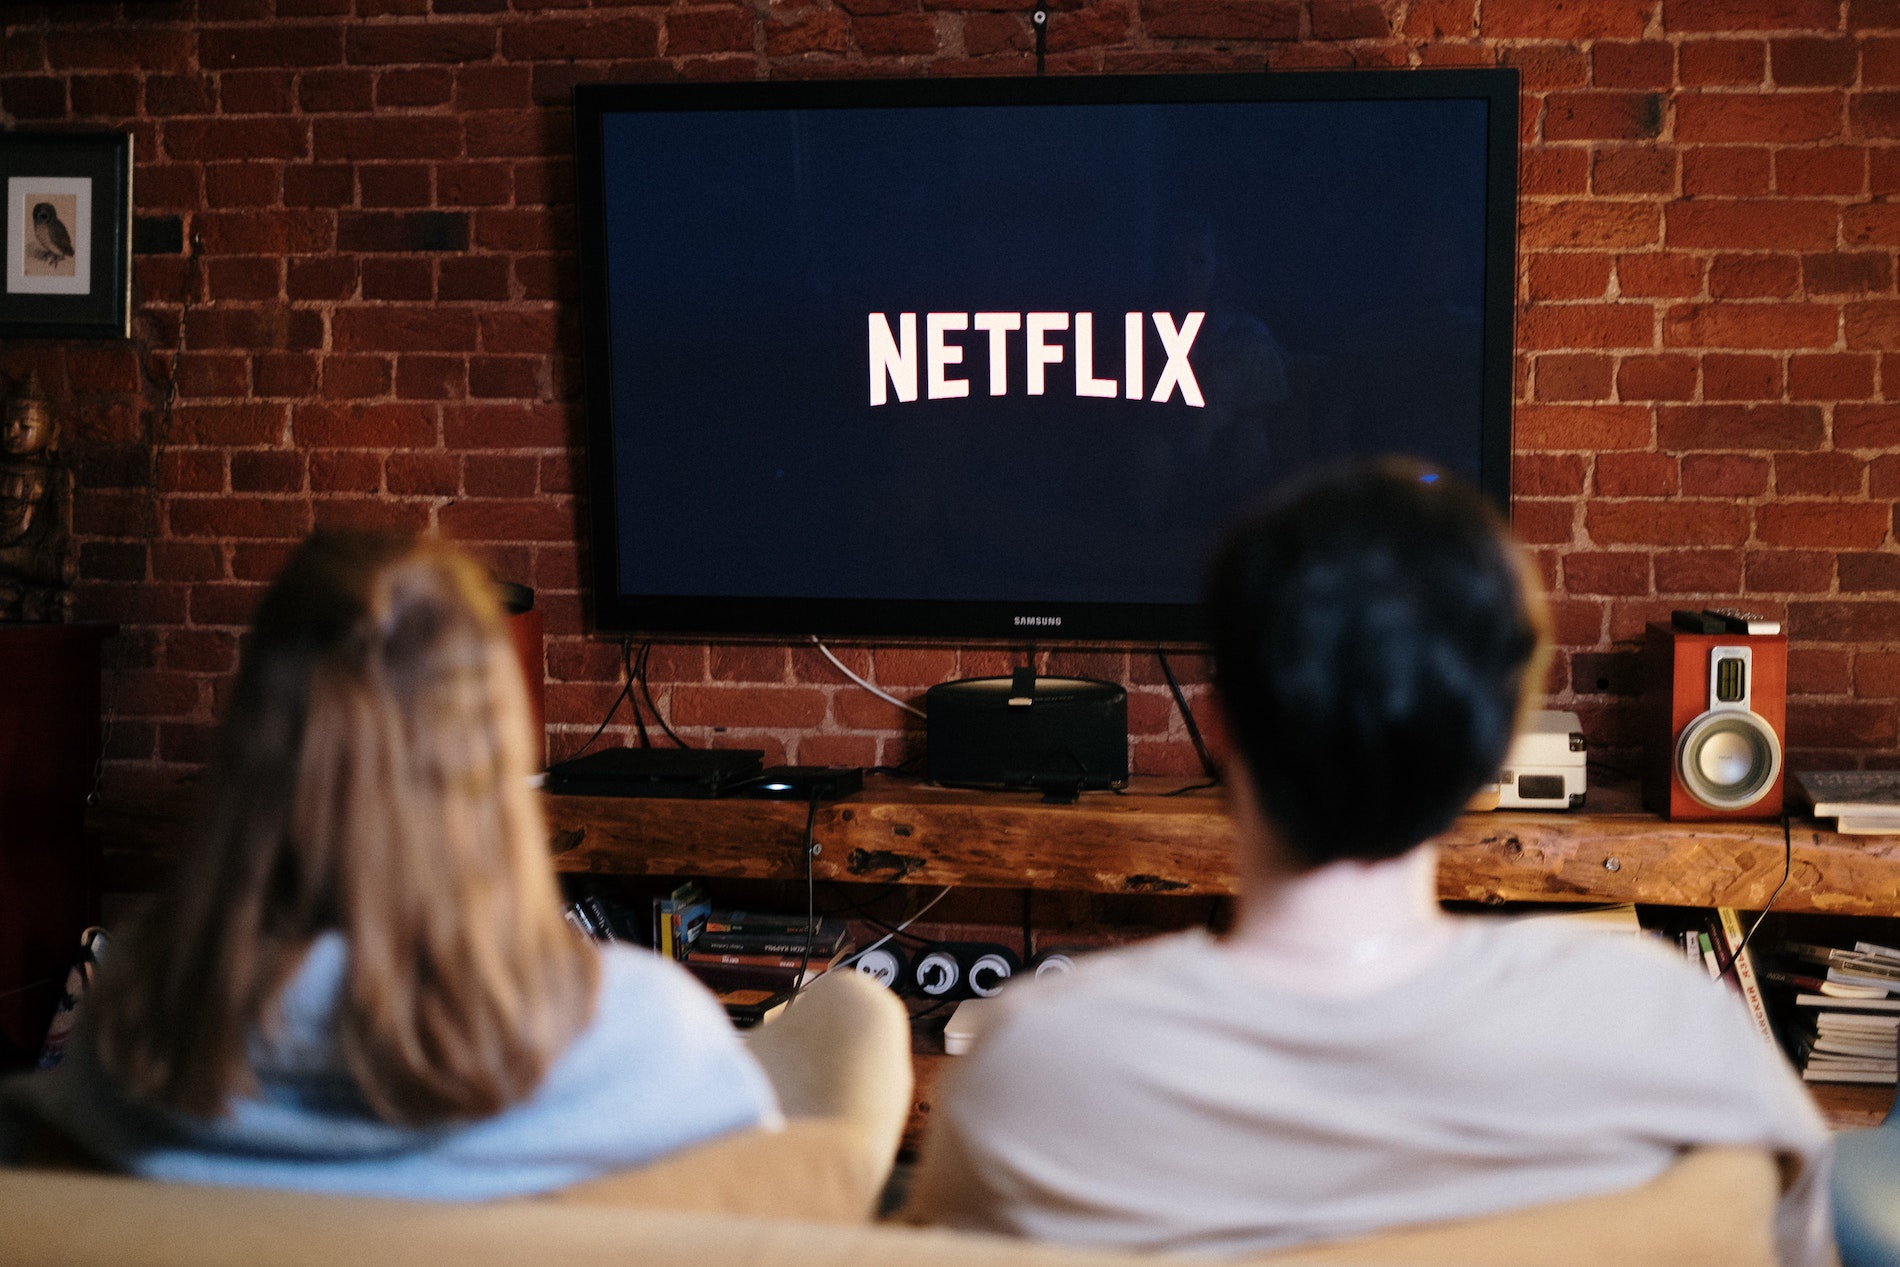 Netflix Casting: Play a Lead Role in a Short Film + More Gigs